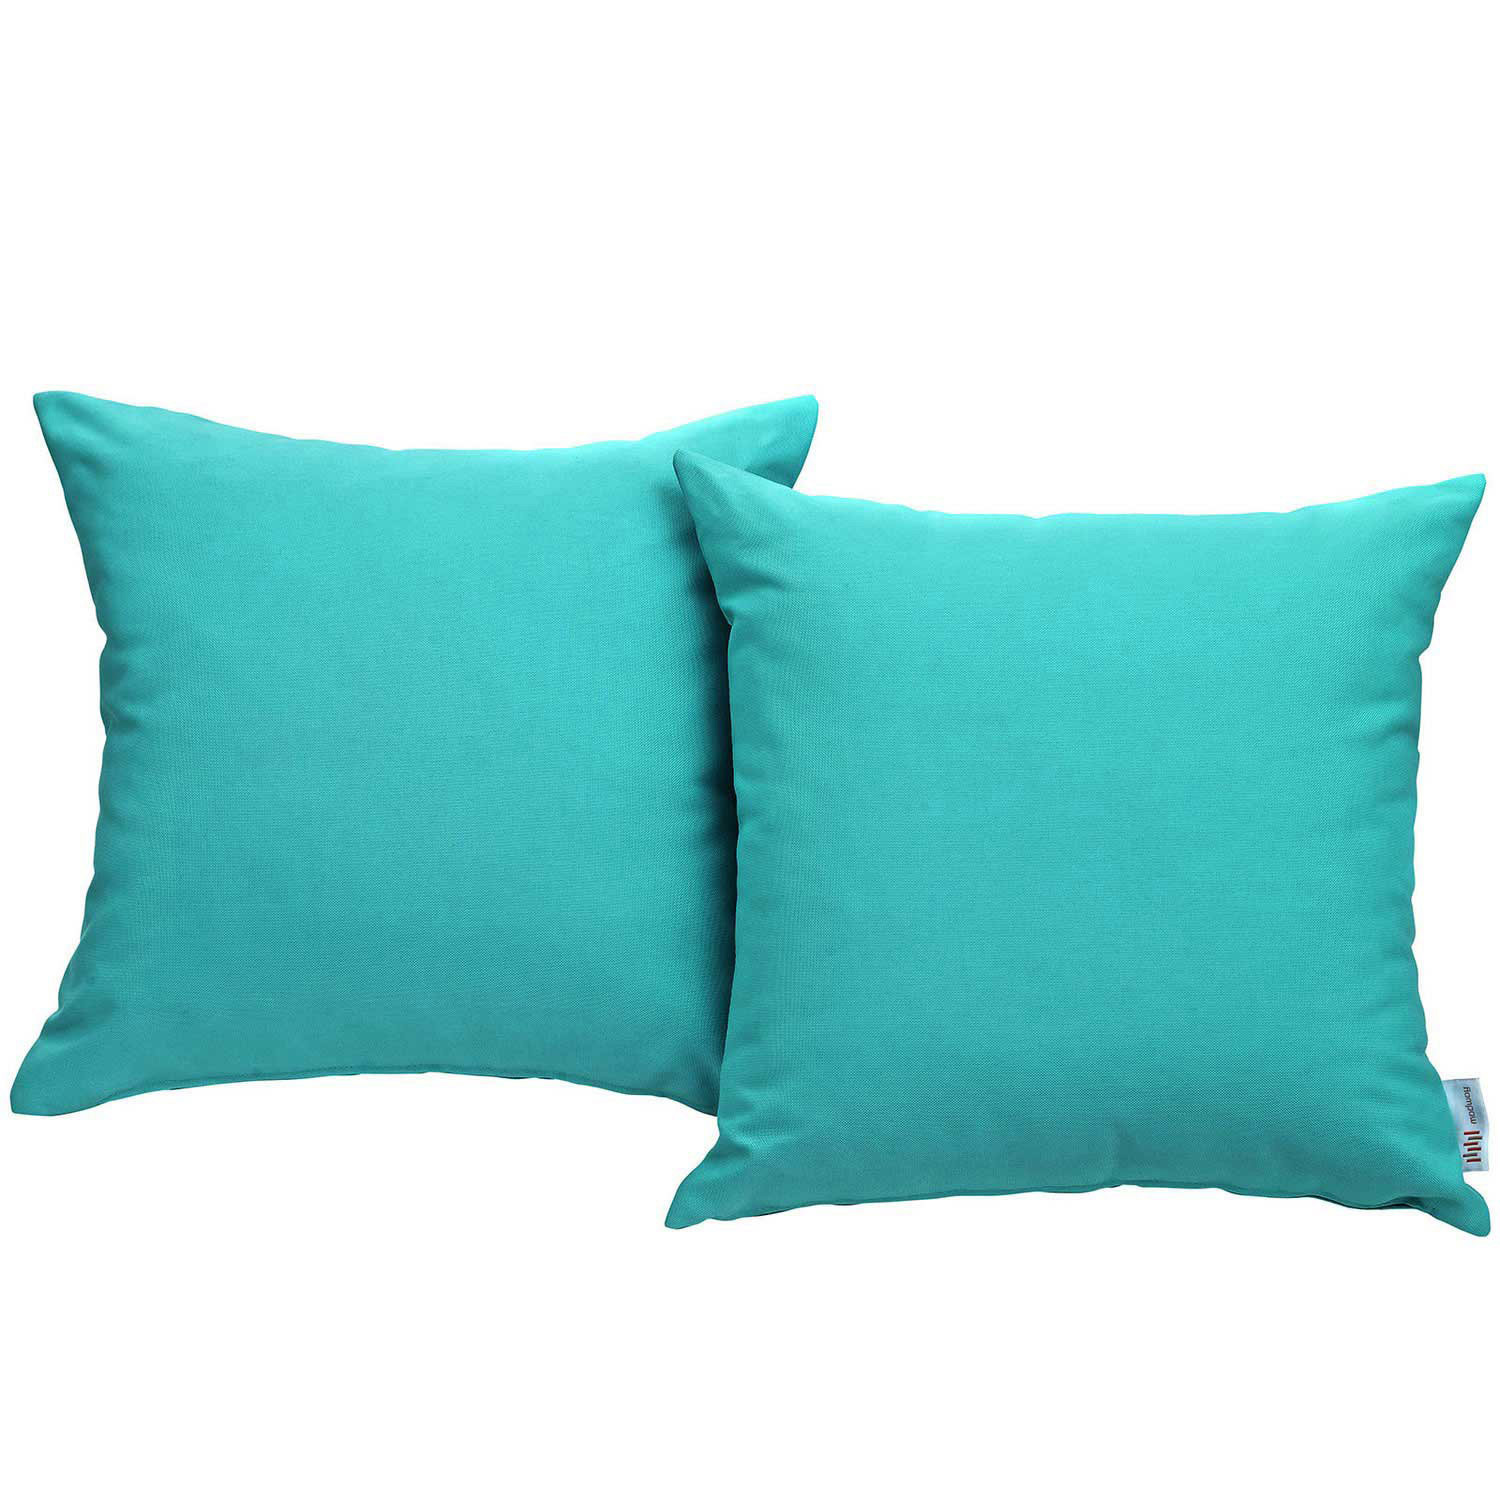 Modway Convene Two Piece Outdoor Patio Pillow Set - Turquoise